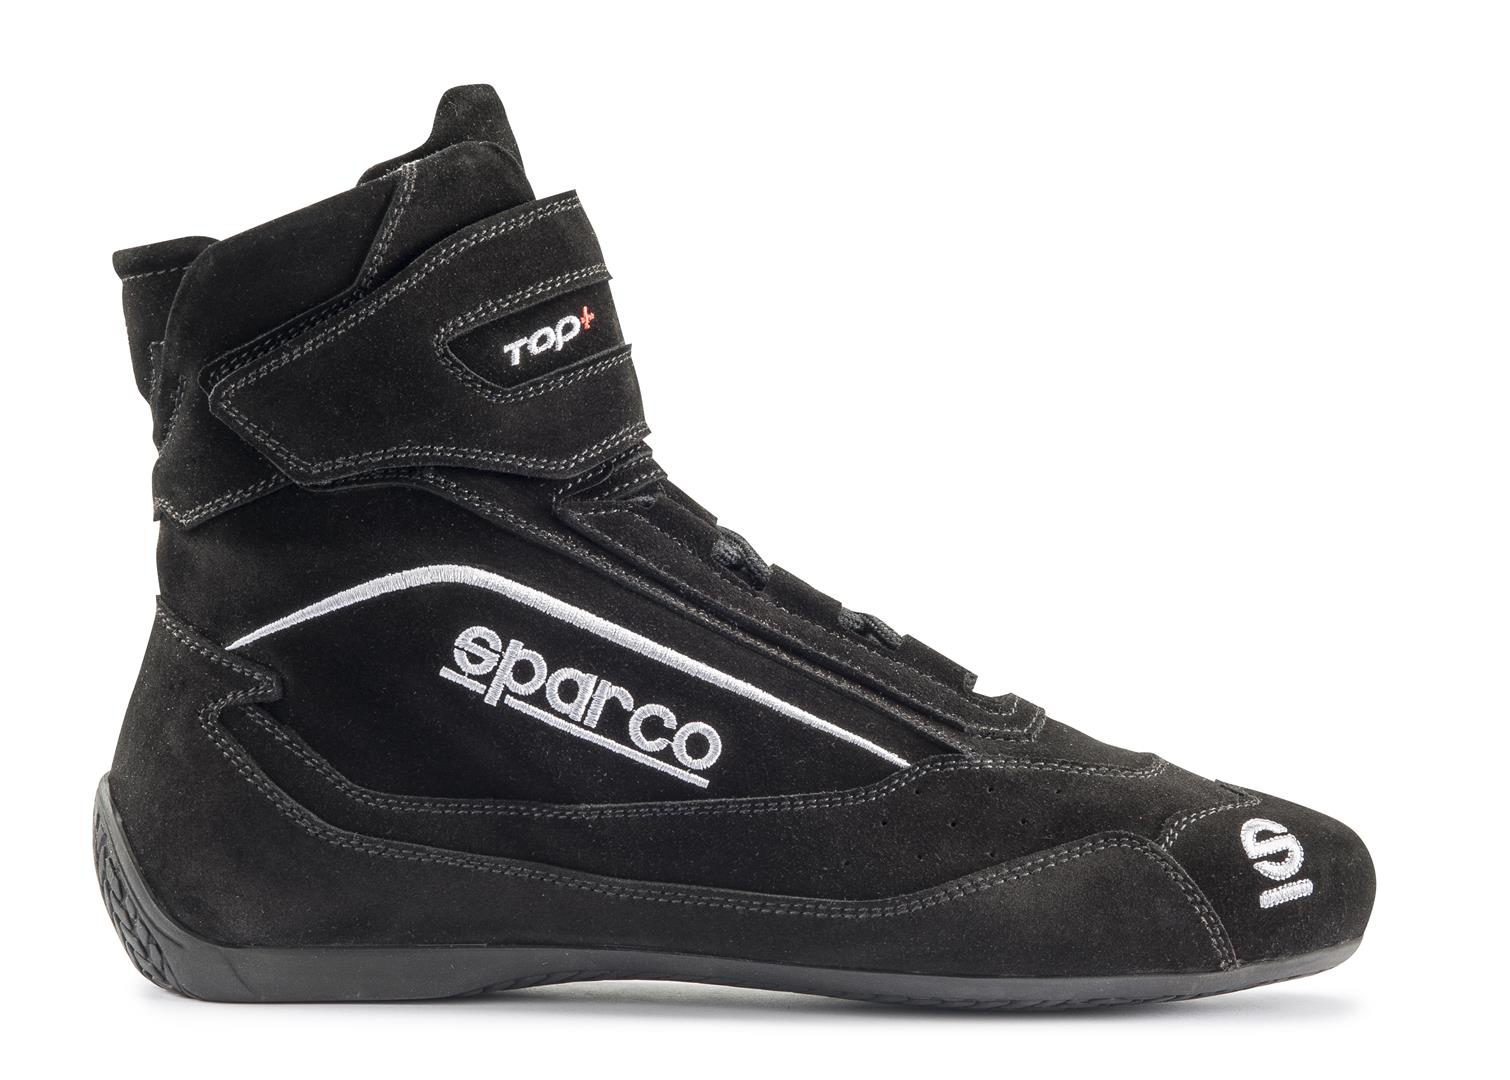 Sparco Black Top+ SH-5 Driving Shoes EU 44 | US 10 - 00121044NR